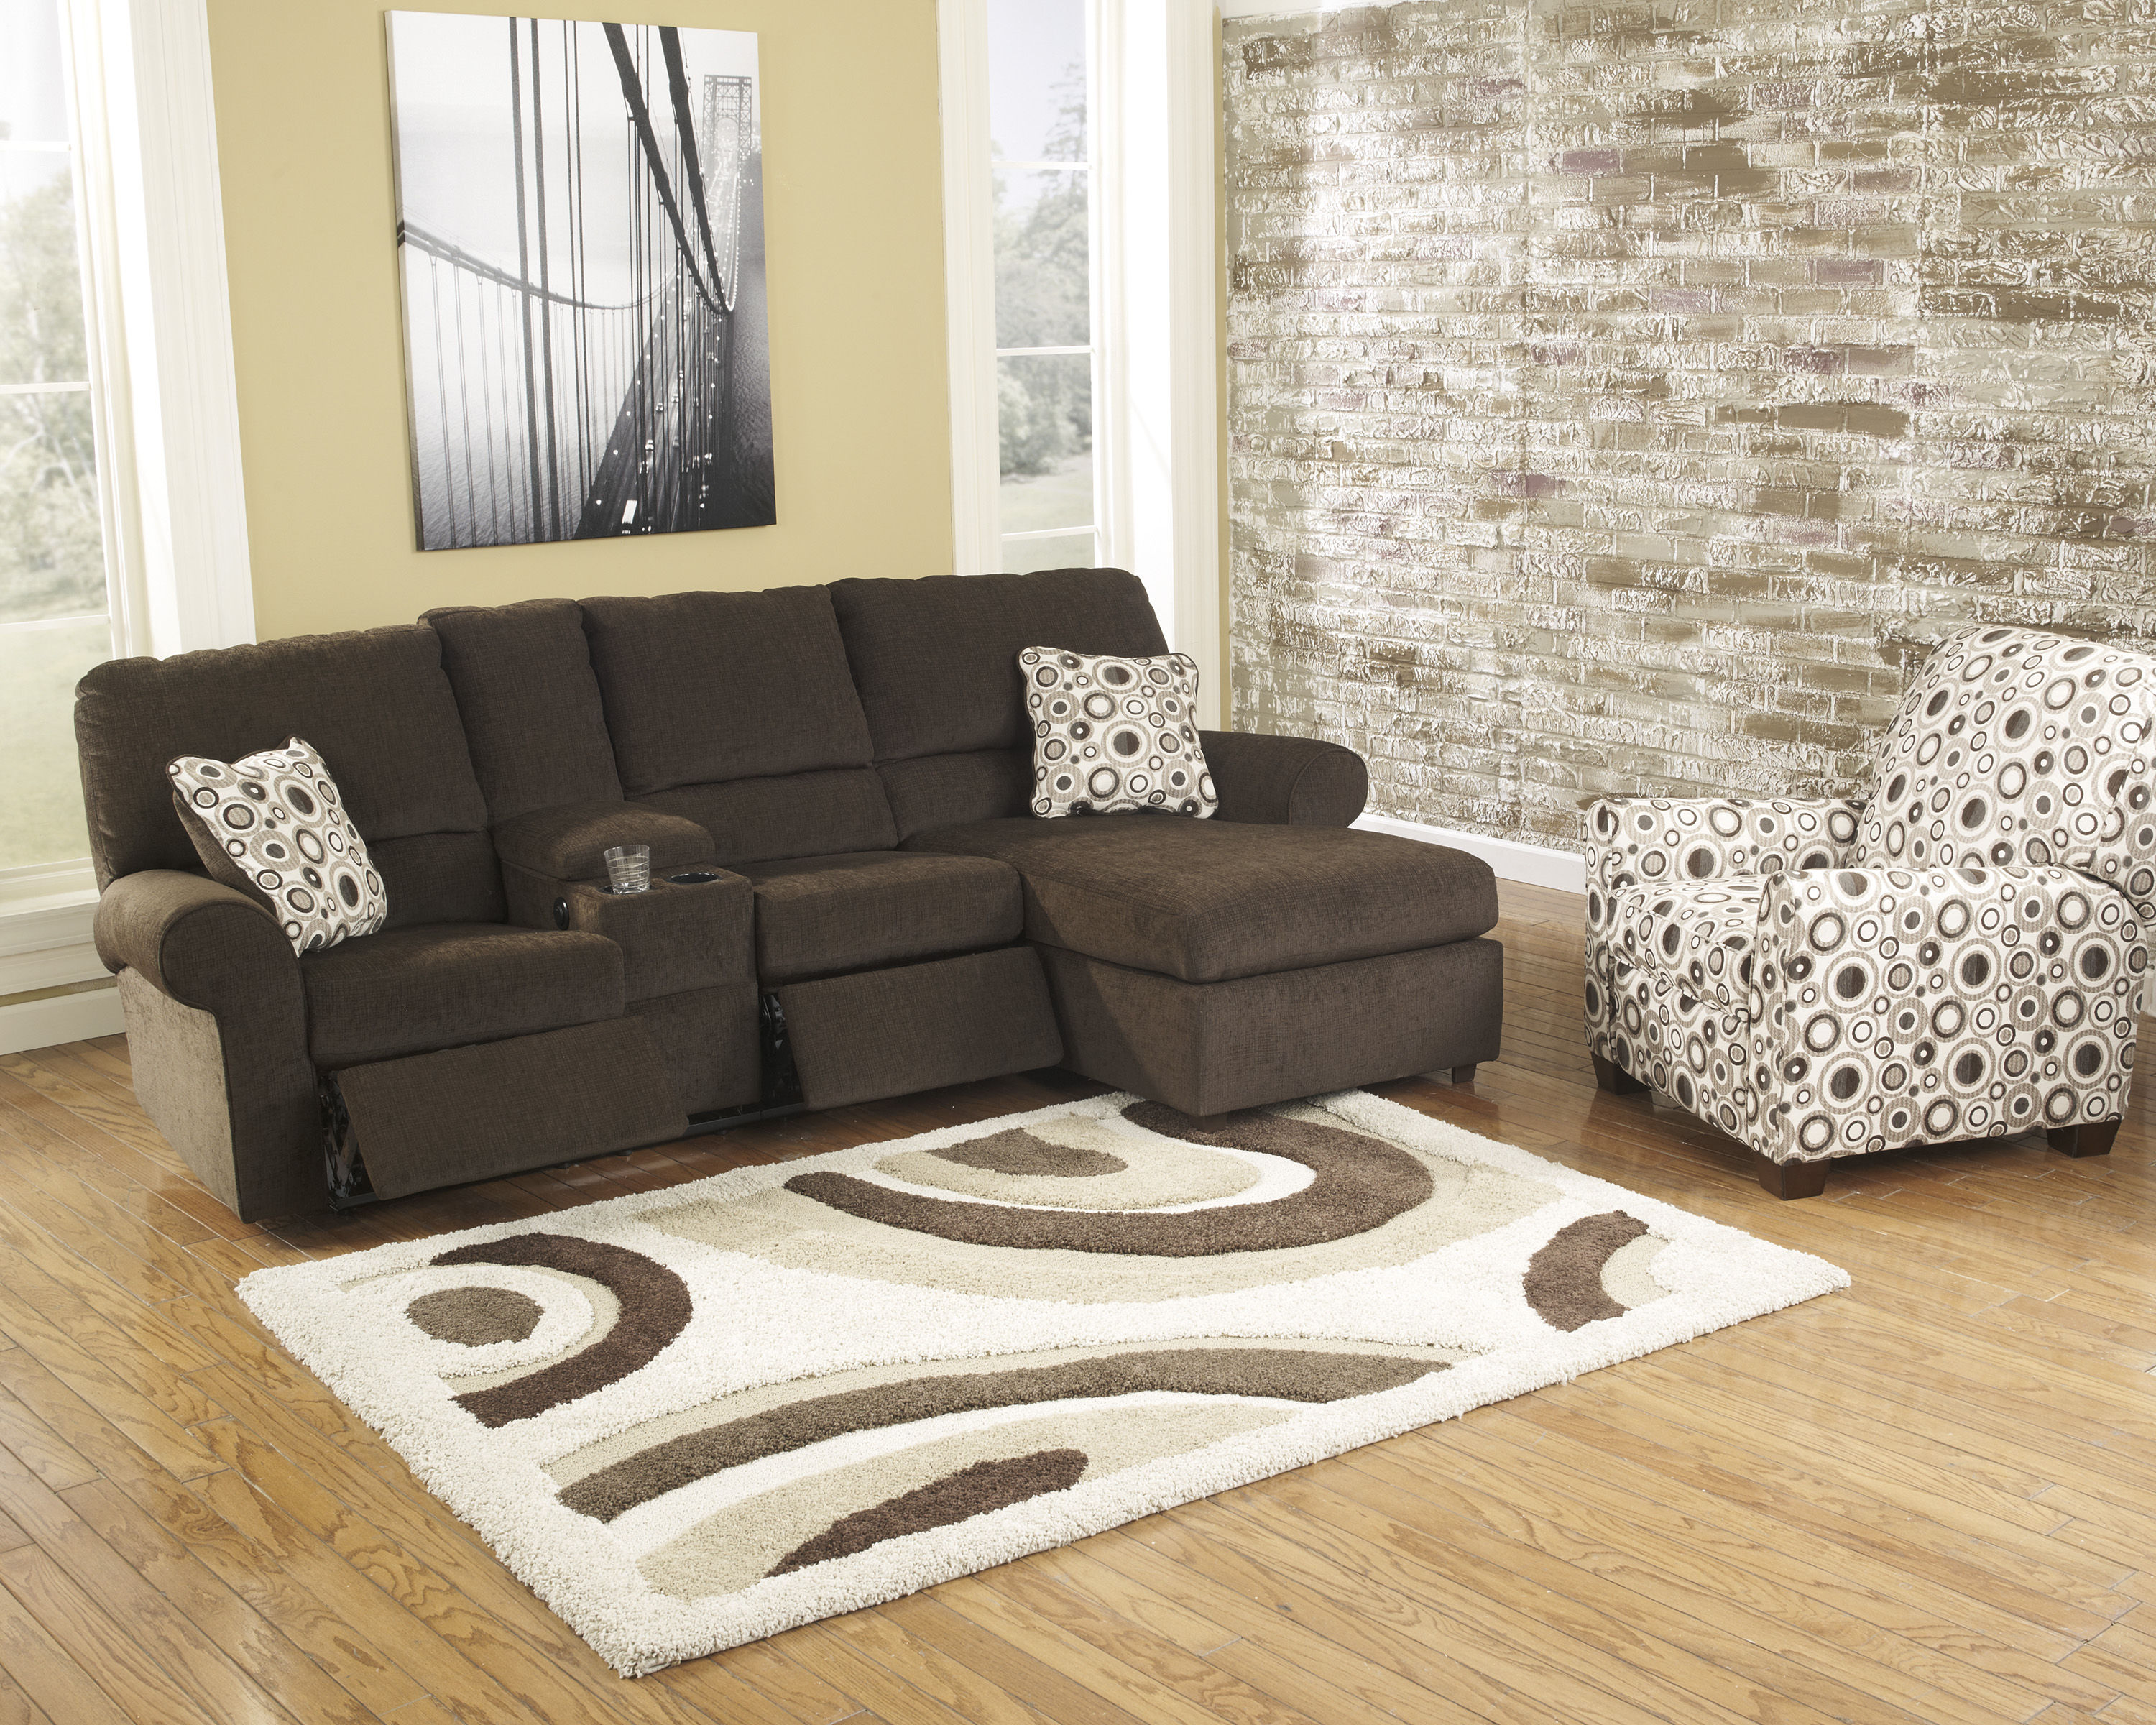 Cybertrack chocolate polyester 3pc sectional w power press for 3pc sectional with chaise